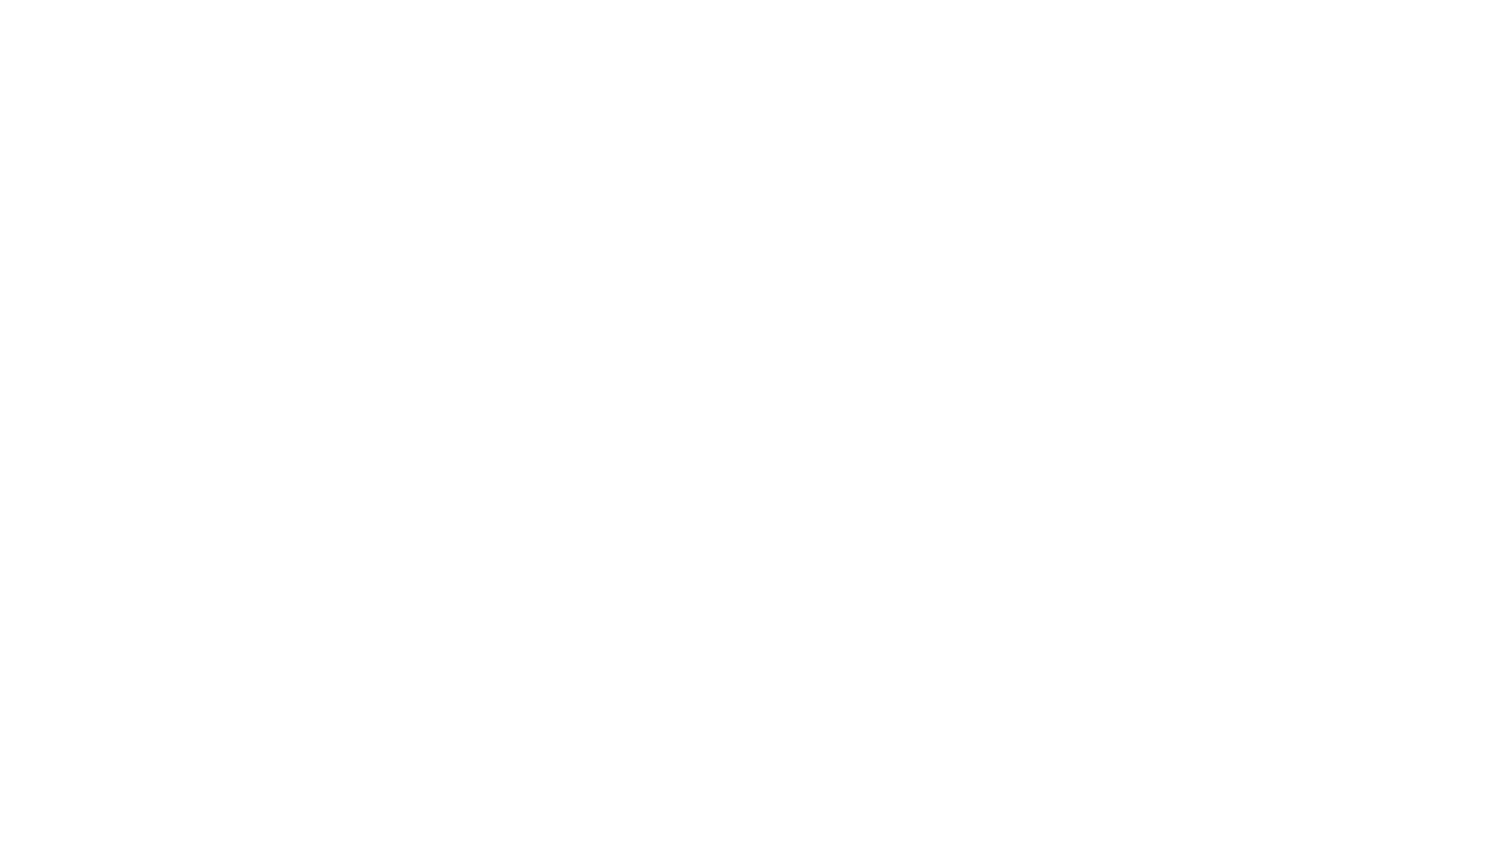 Ashley Gaffney Design